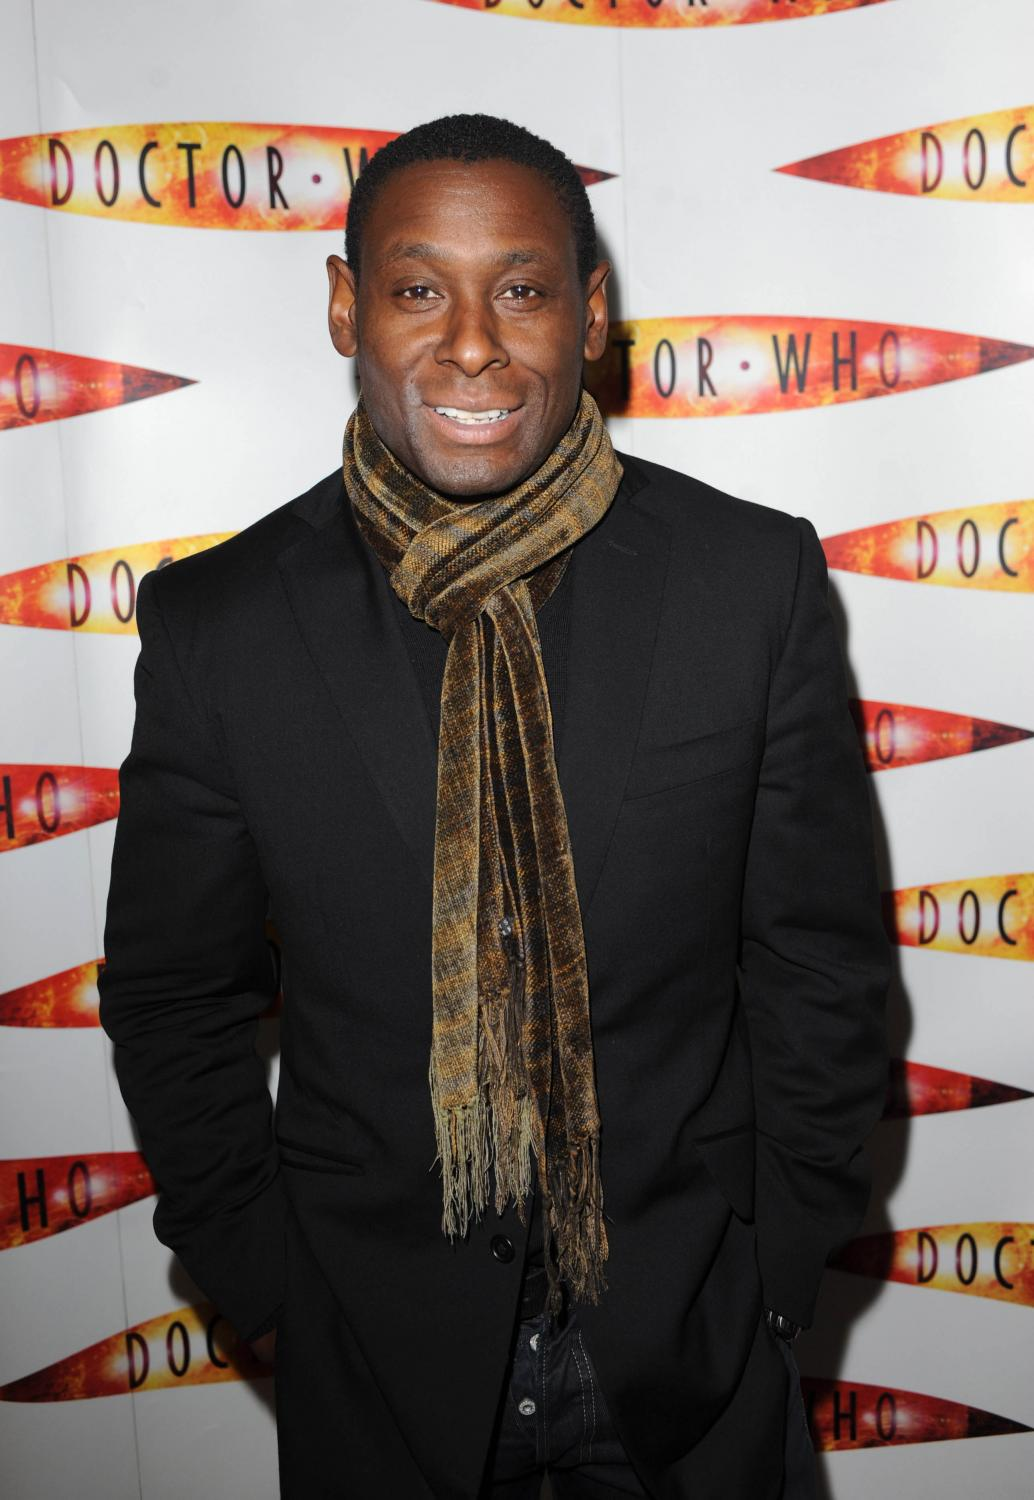 david harewood movies and tv showsdavid harewood blood diamond, david harewood lance reddick, david harewood call of duty, david harewood instagram, david harewood brother, david harewood imdb, david harewood actor, david harewood kirsty handy, david harewood doctor who, david harewood married, david harewood wife, david harewood supergirl, david harewood movies and tv shows, david harewood twitter, david harewood net worth, david harewood interview, david harewood ears, david harewood othello, david harewood height, david harewood the night manager